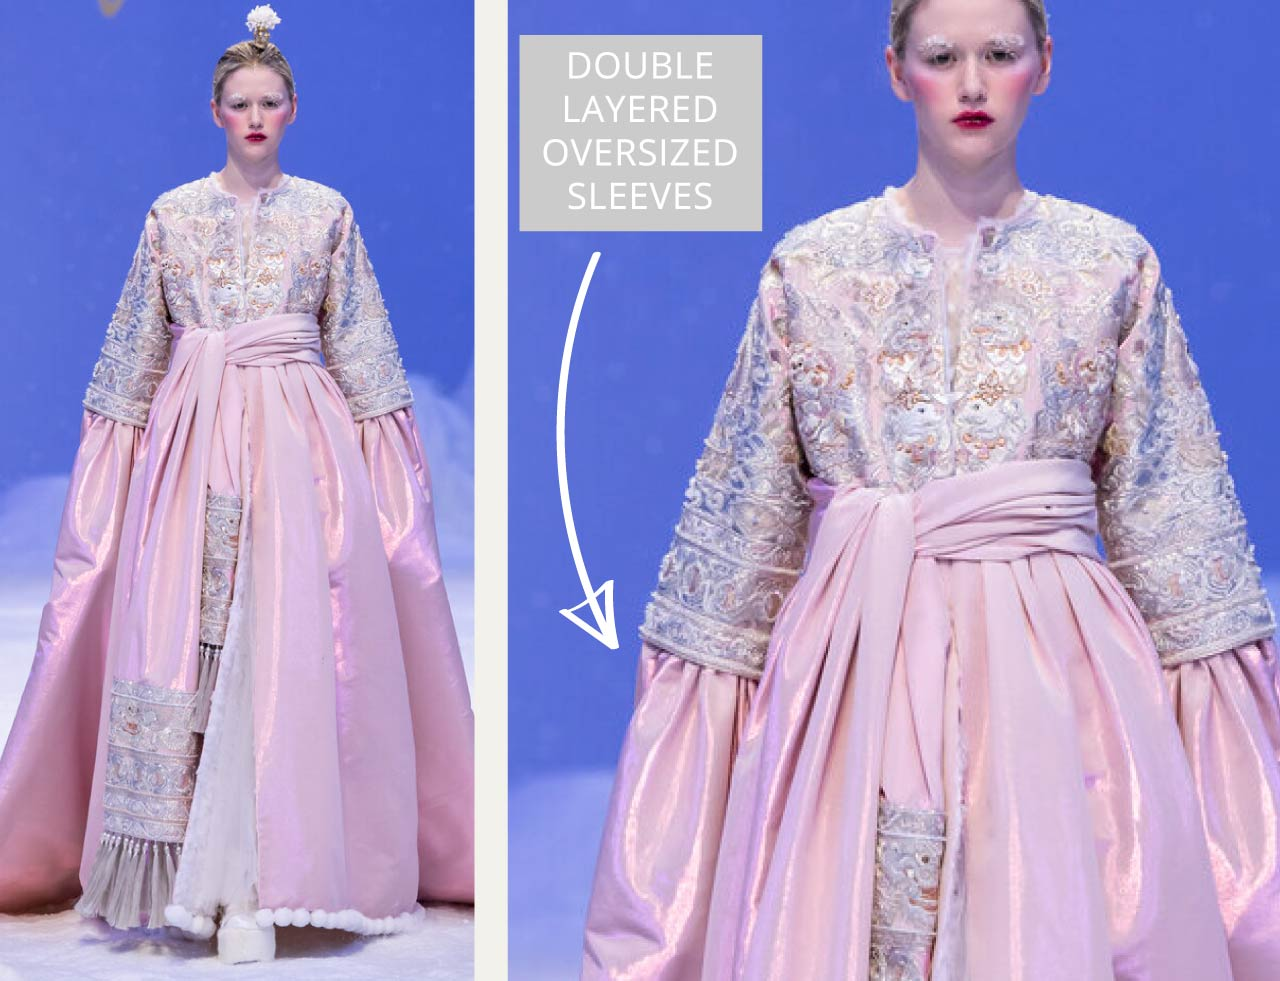 Reverse Textiles at Guo Pei Haute Couture | The Cutting Class. Double layered oversized sleeves. SS20 Haute Couture.